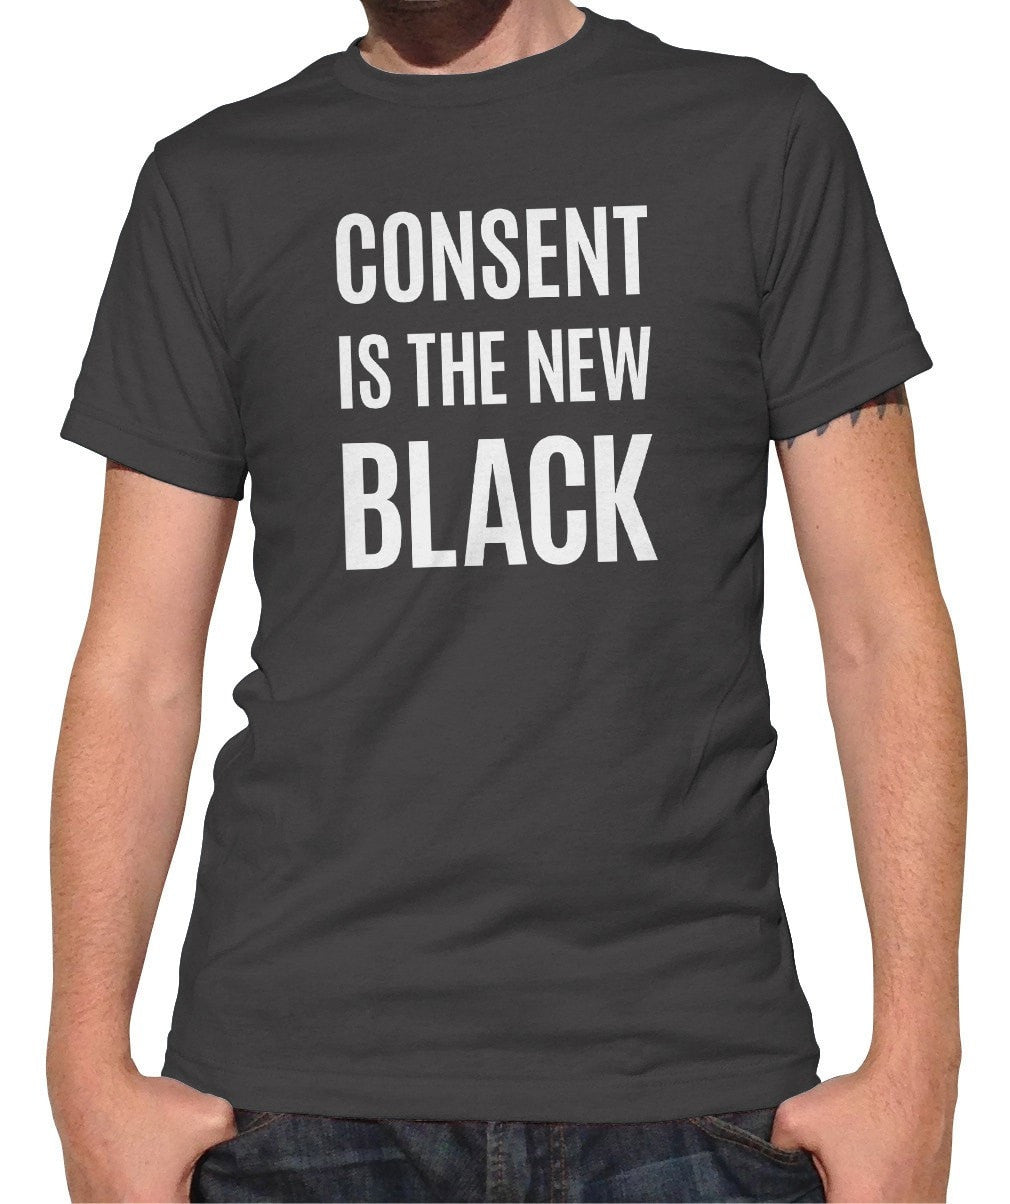 Men's Consent is the New Black T-Shirt